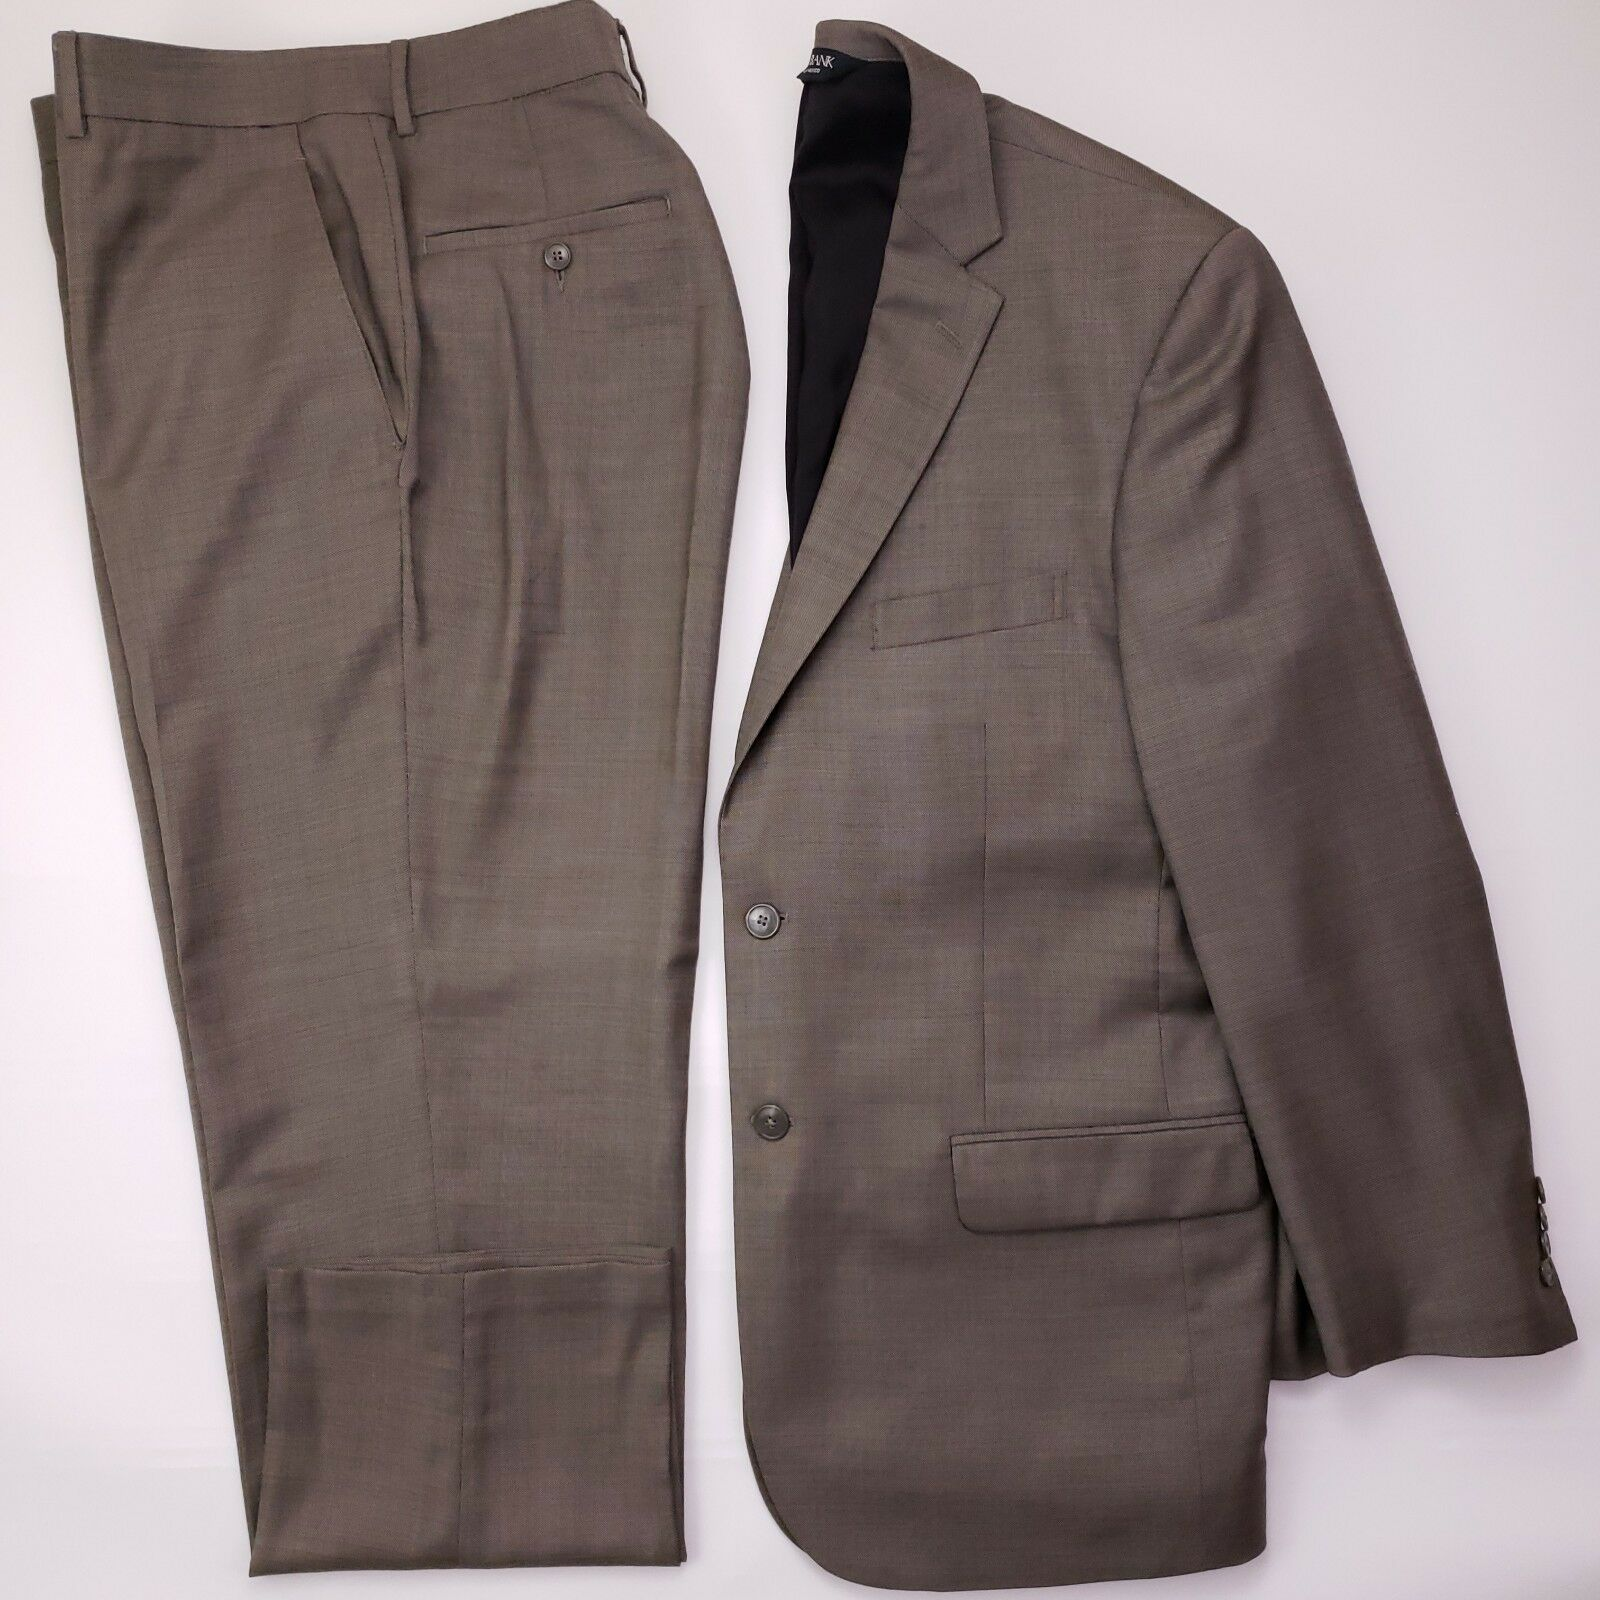 Jos A Bank Suit 42R Slim Fit Brown Taupe 2 Button Wool Mens Sz Travelers Edition